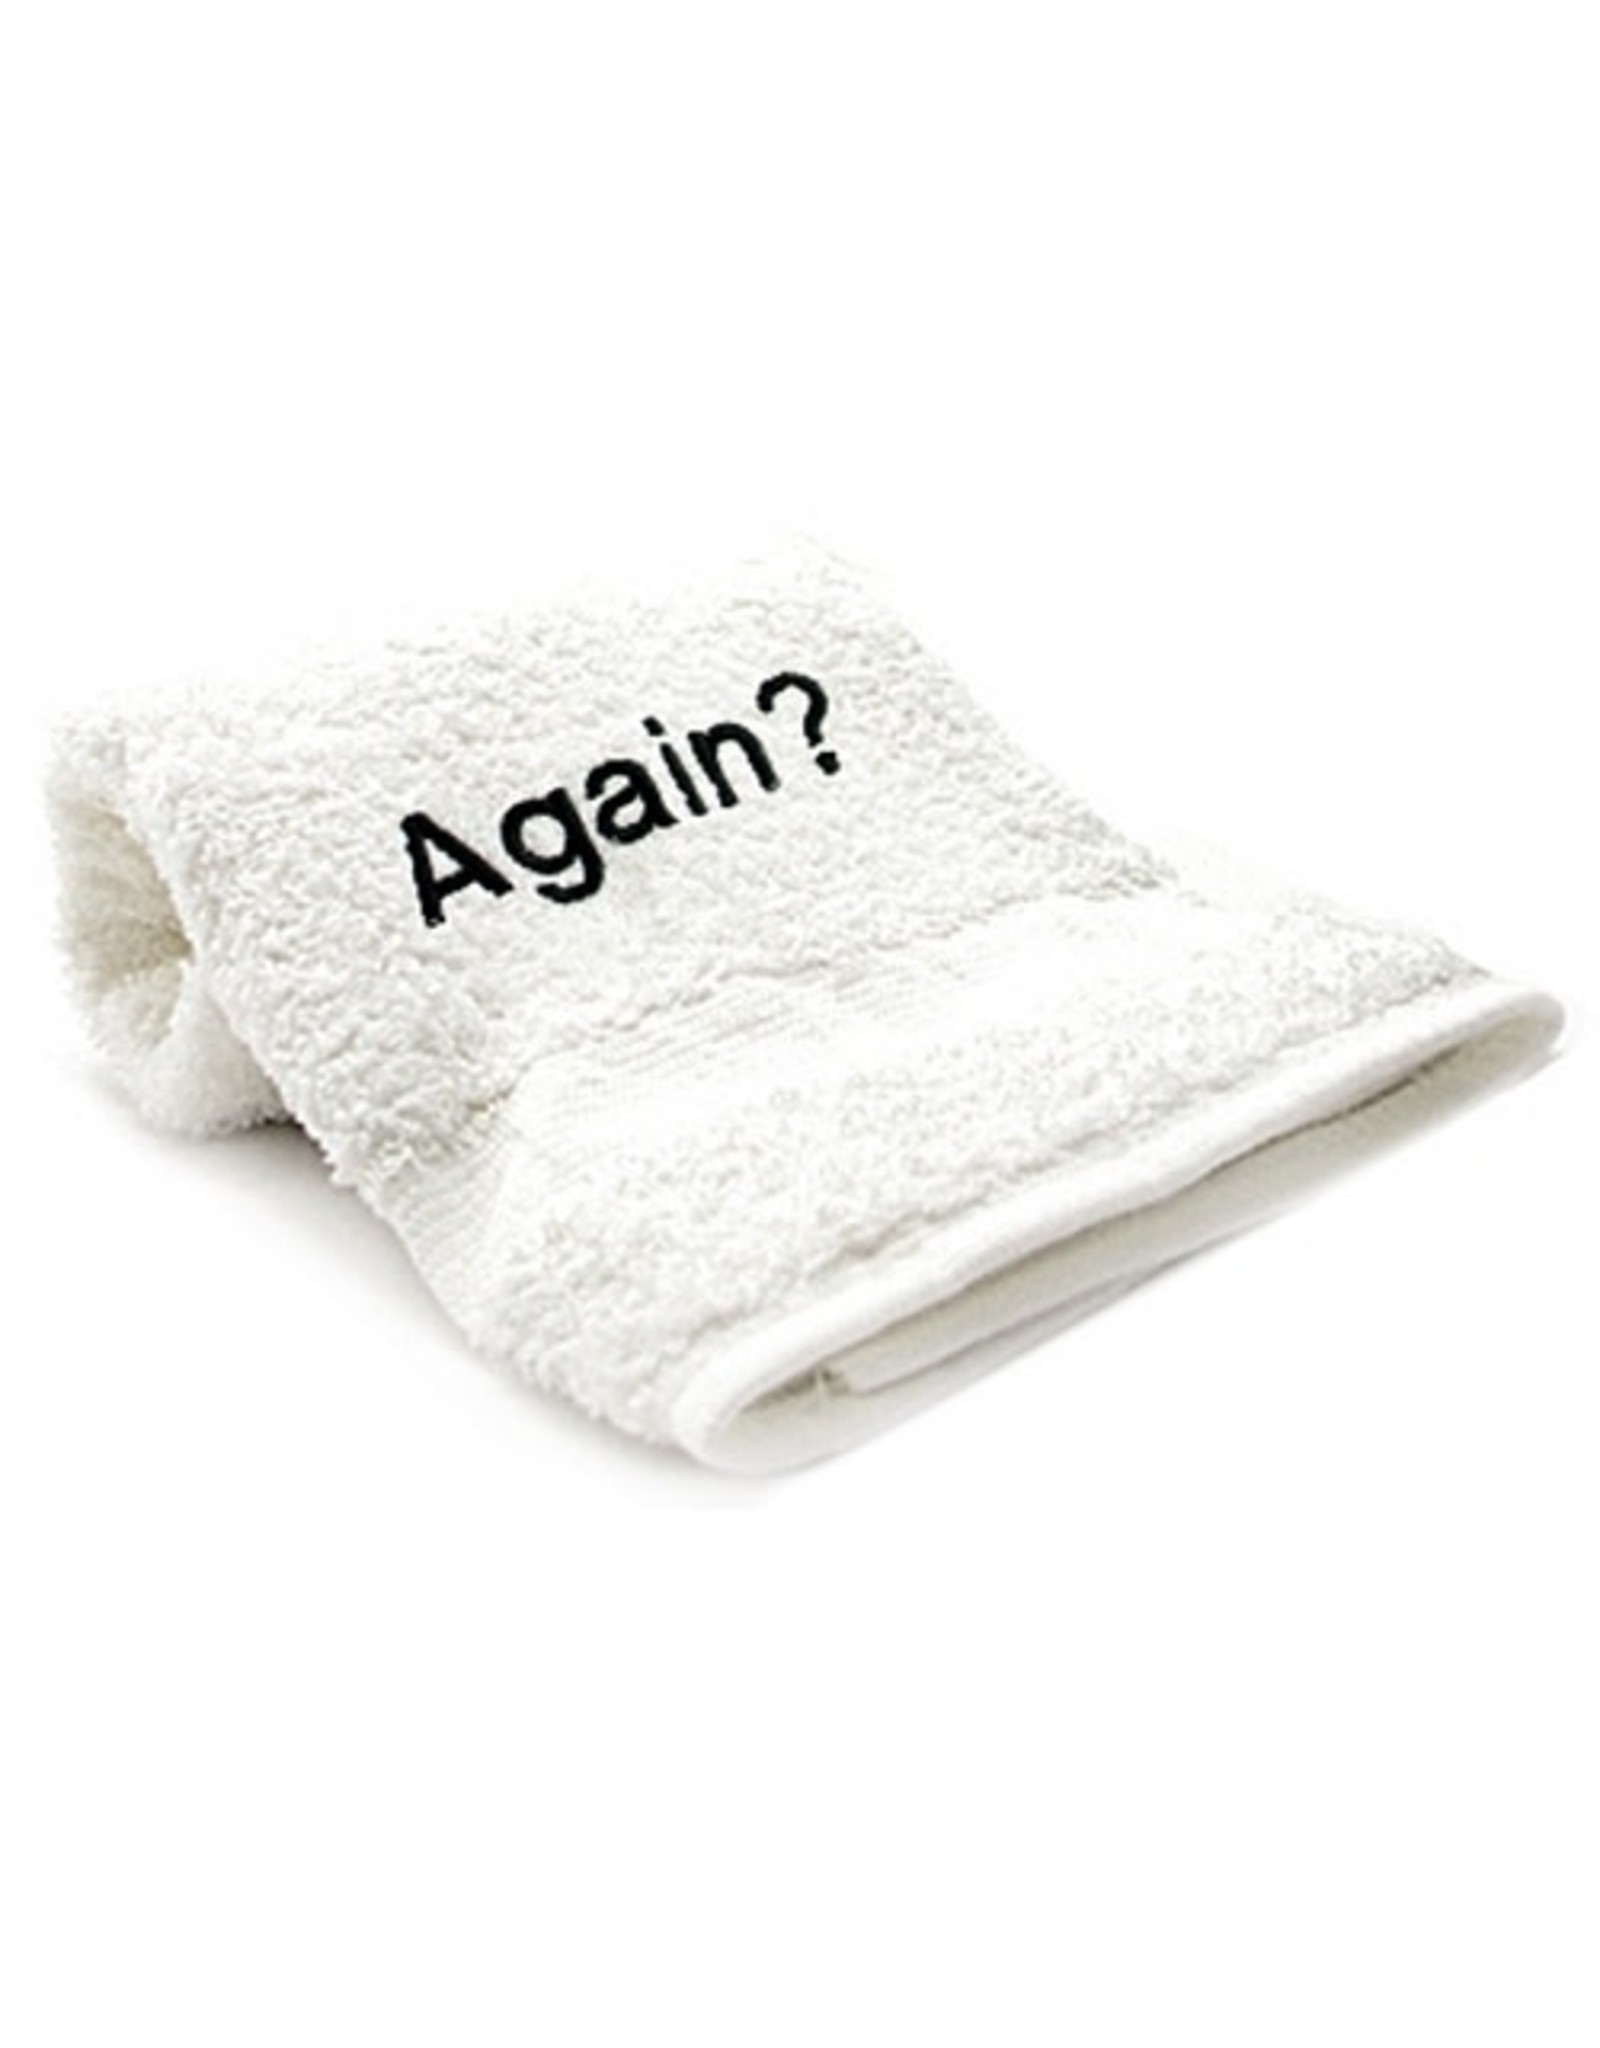 Towels with Attitude ''Again?''